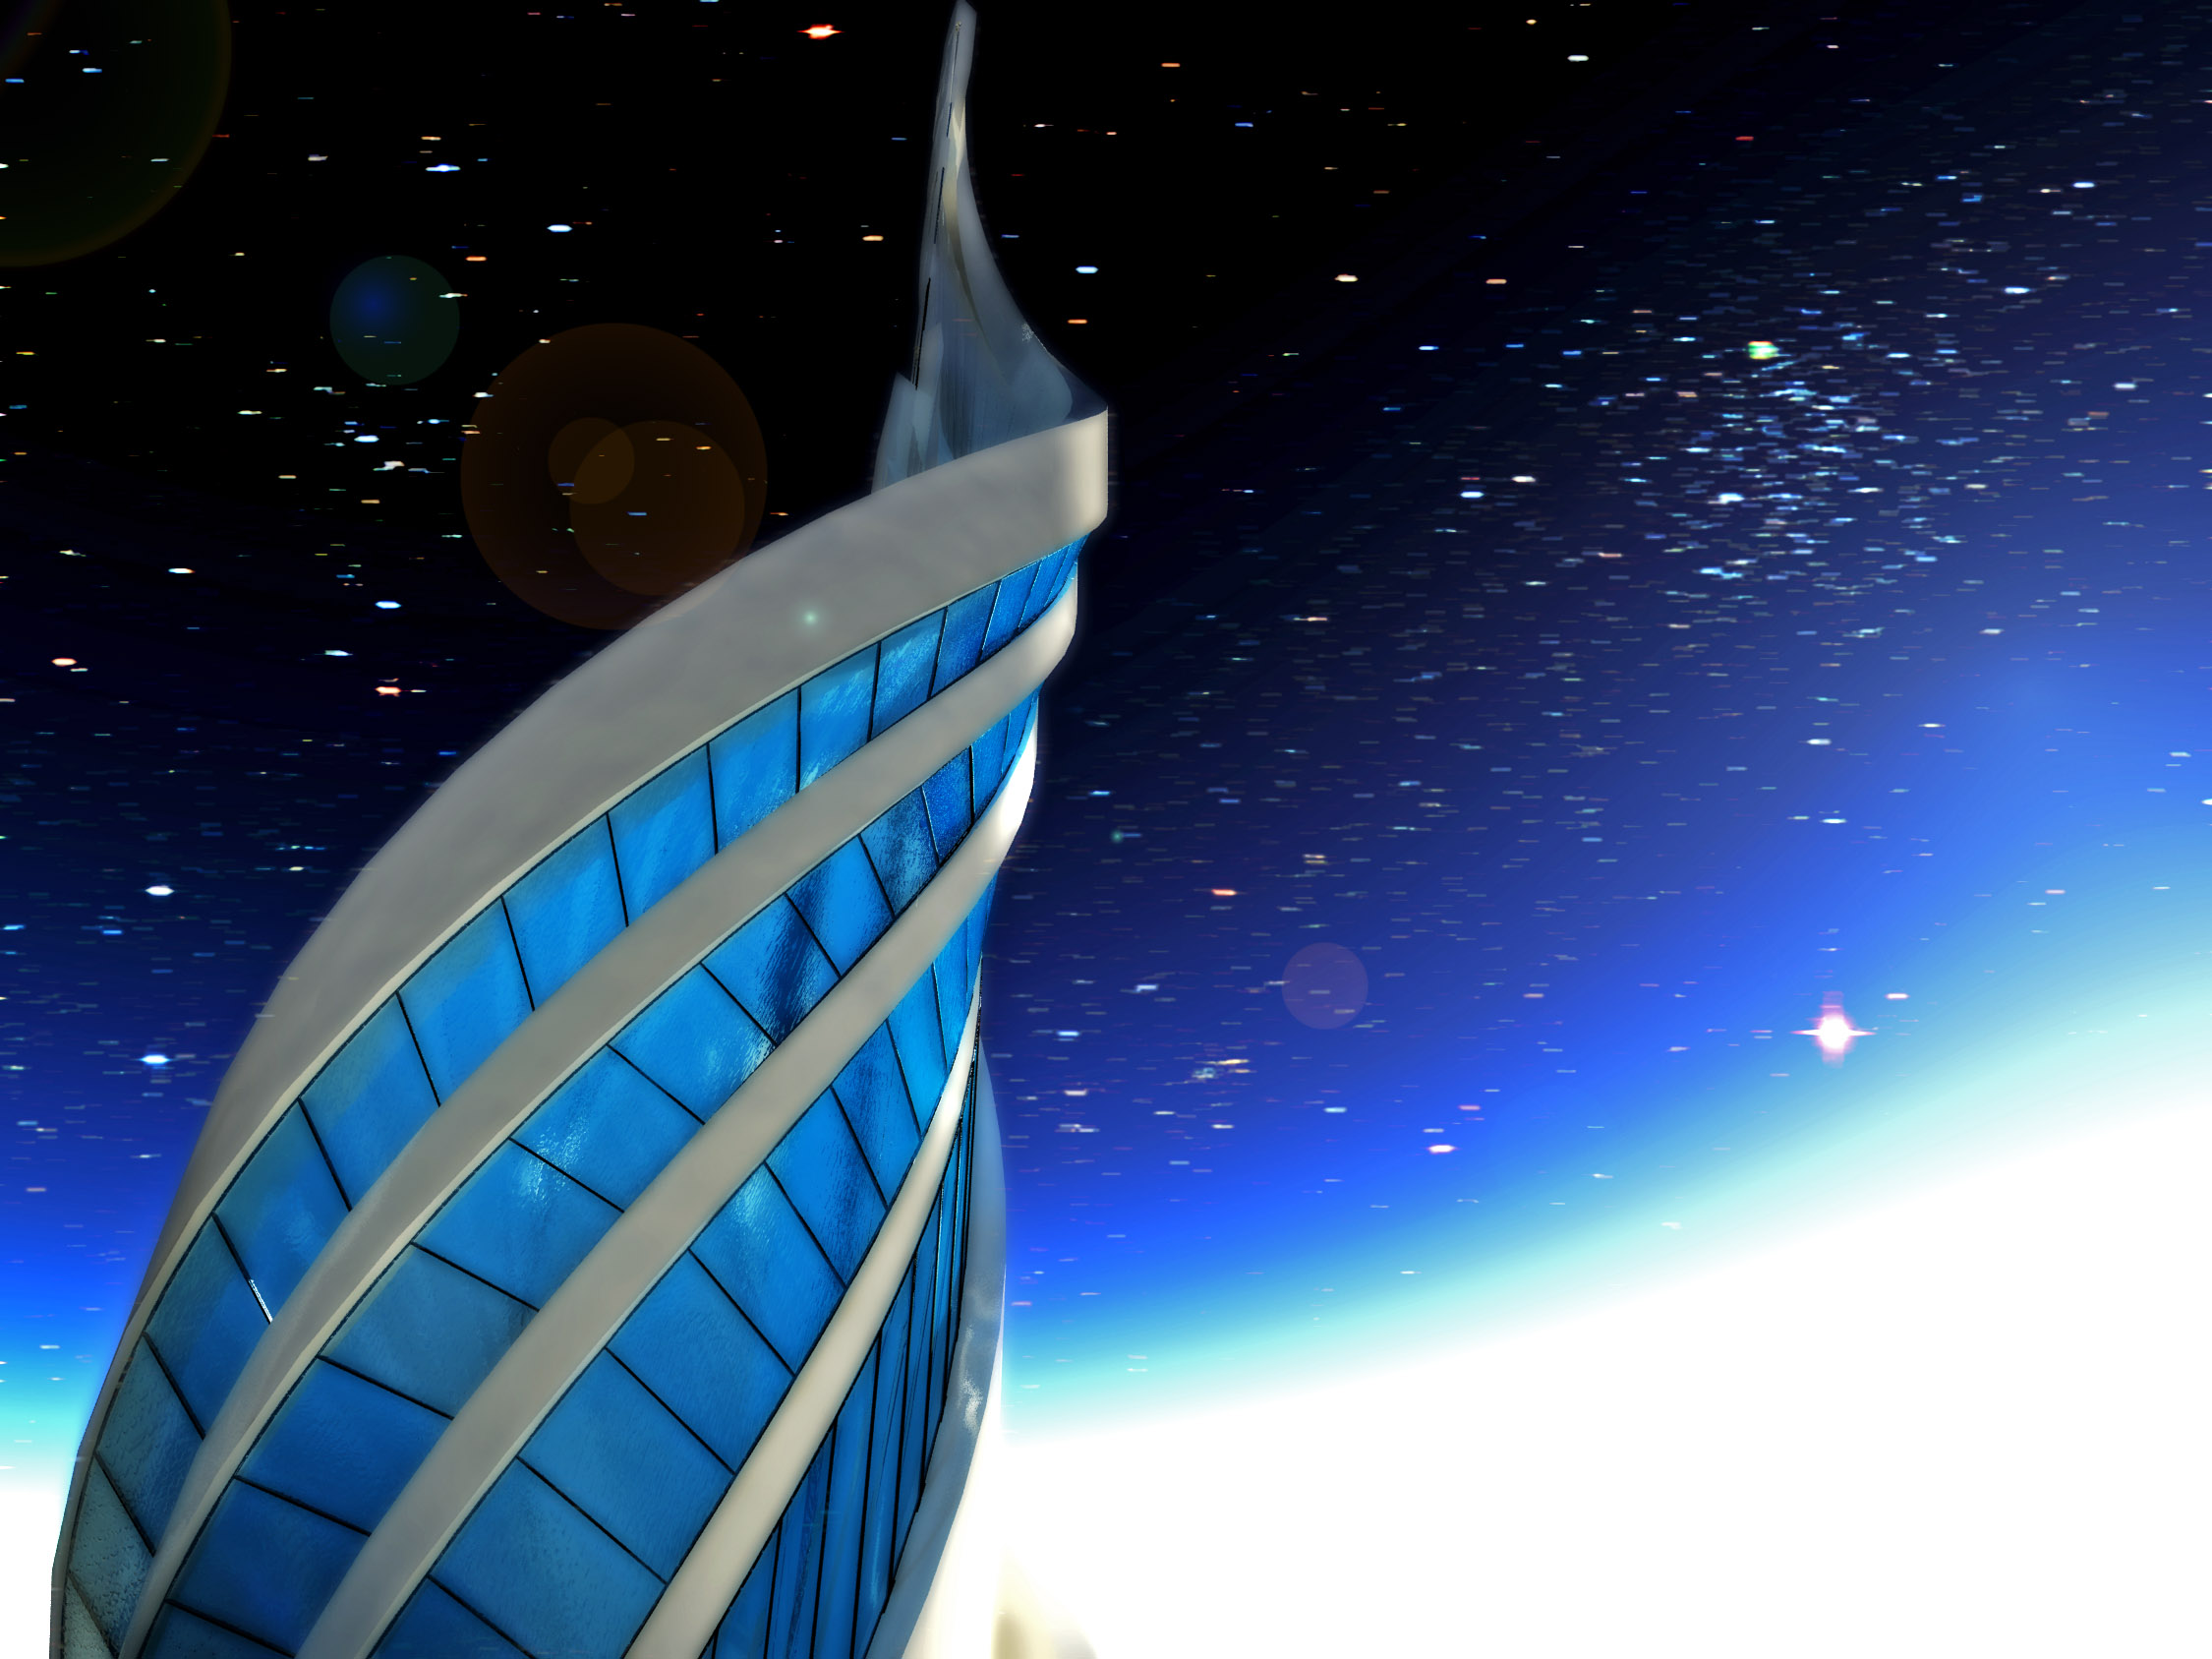 Space architecture by sniggi b on deviantart for Importance of space in architecture